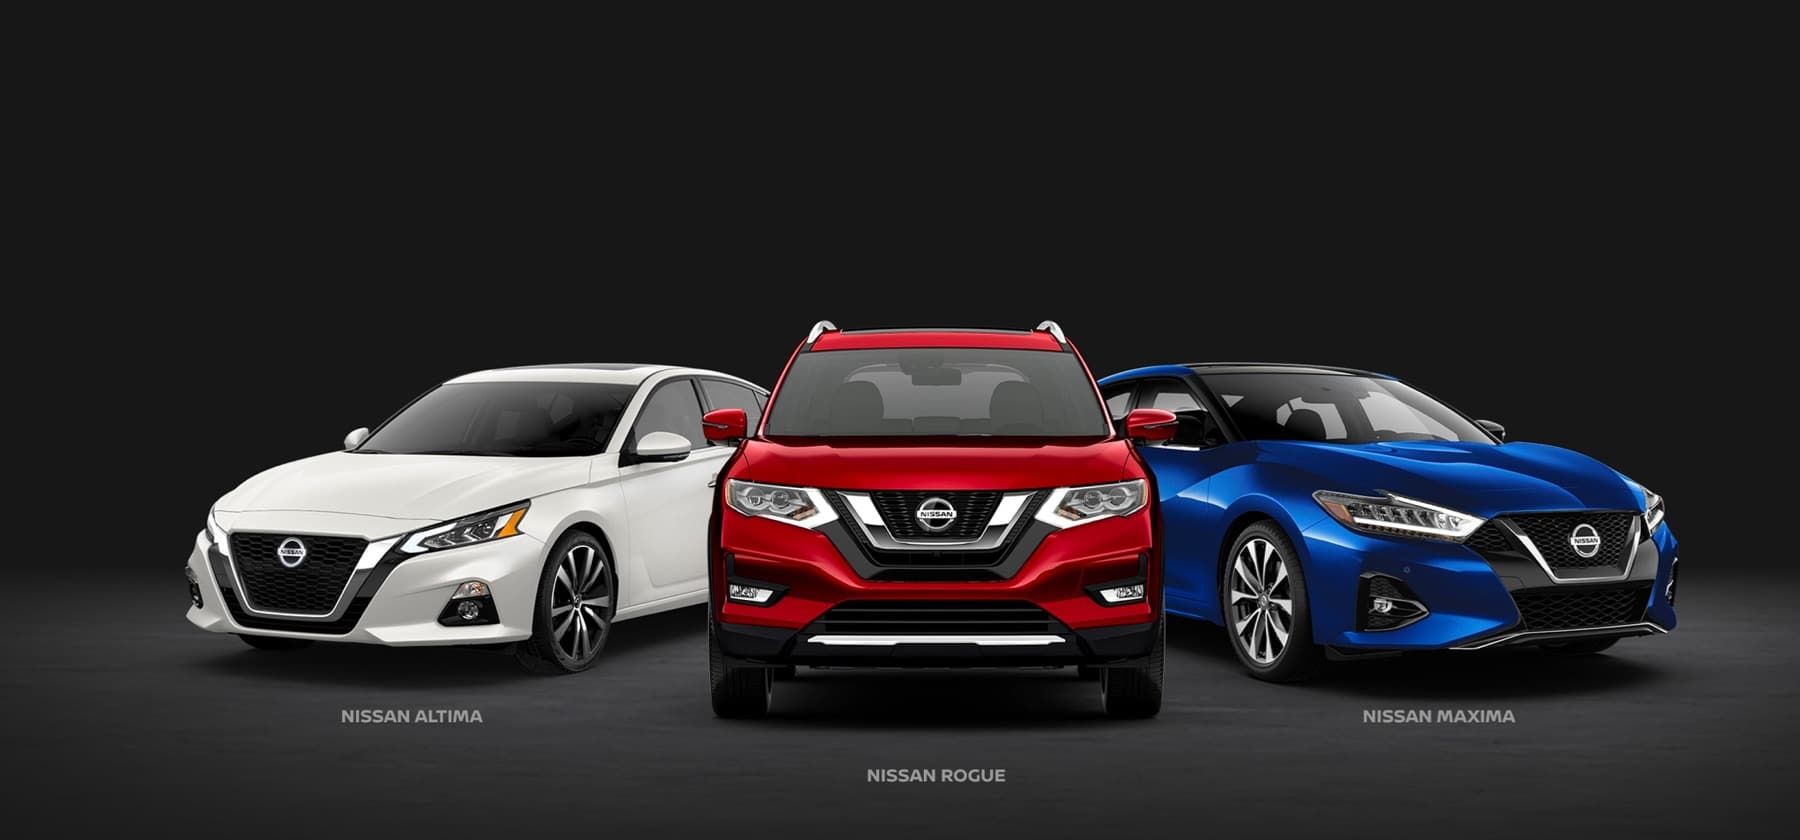 White Nissan Altima, red Nissan Rogue, blue Nissan Maxima